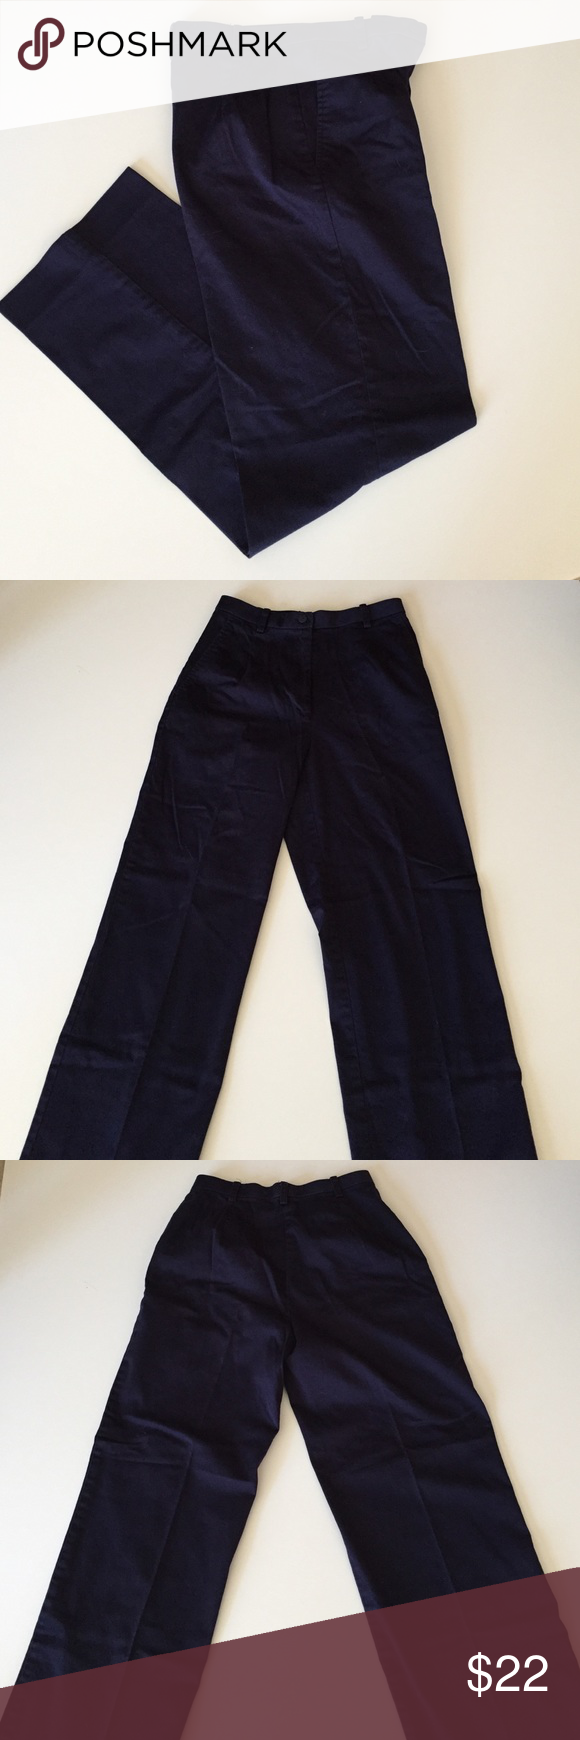 """Dialogue Navy Stretch Cotton Pants Excellent condition. Navy. 97% cotton, 2% spandex. 2 side pockets. Full elastic hidden waistband. Waist 26"""". 29"""" inseam. 10.5"""" rise. Not from a smoke-free house. Dialogue Pants Trousers"""